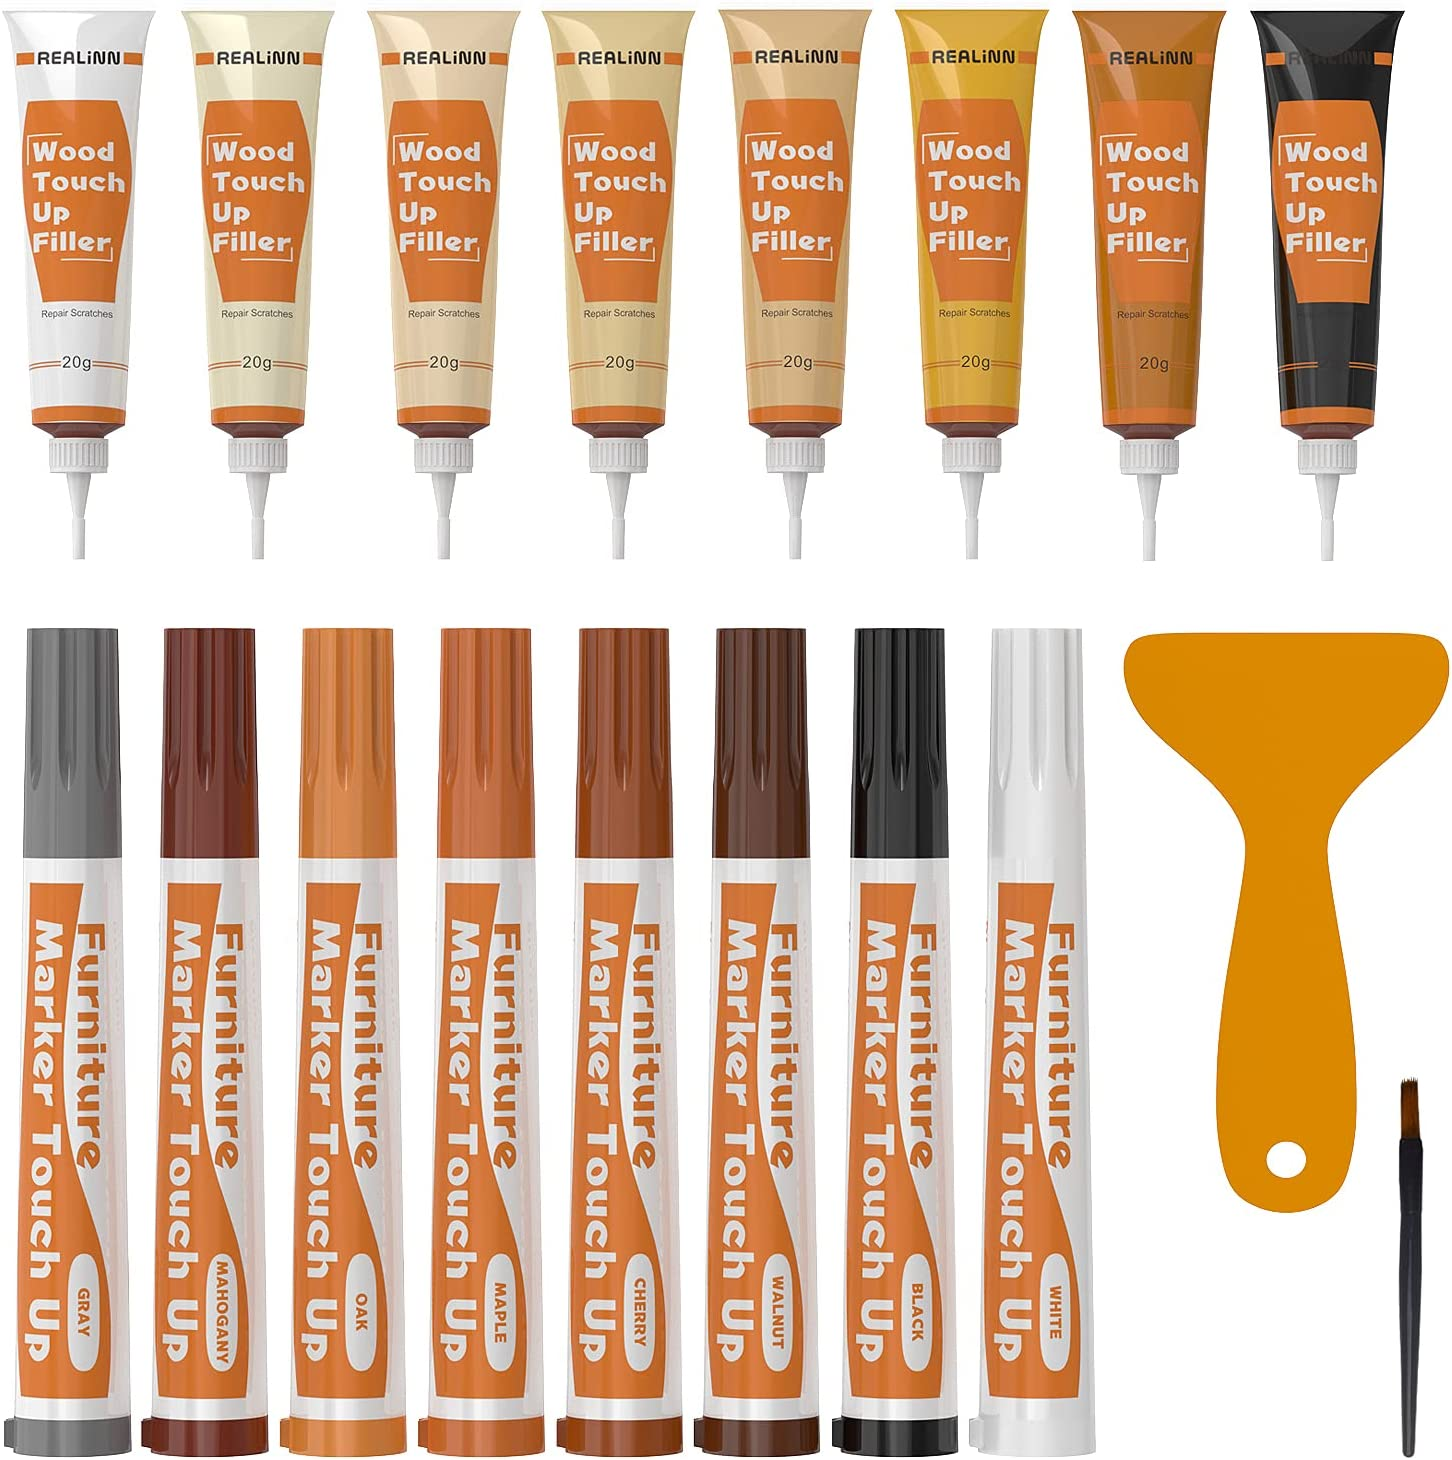 REALINN Wood Furniture Repair Kit 8 Light Colors- Wood Fillers and Touch Up Markers, Repair Scratch, Cracks, Discoloration for Wooden Door, Floor, Table, Cabinet